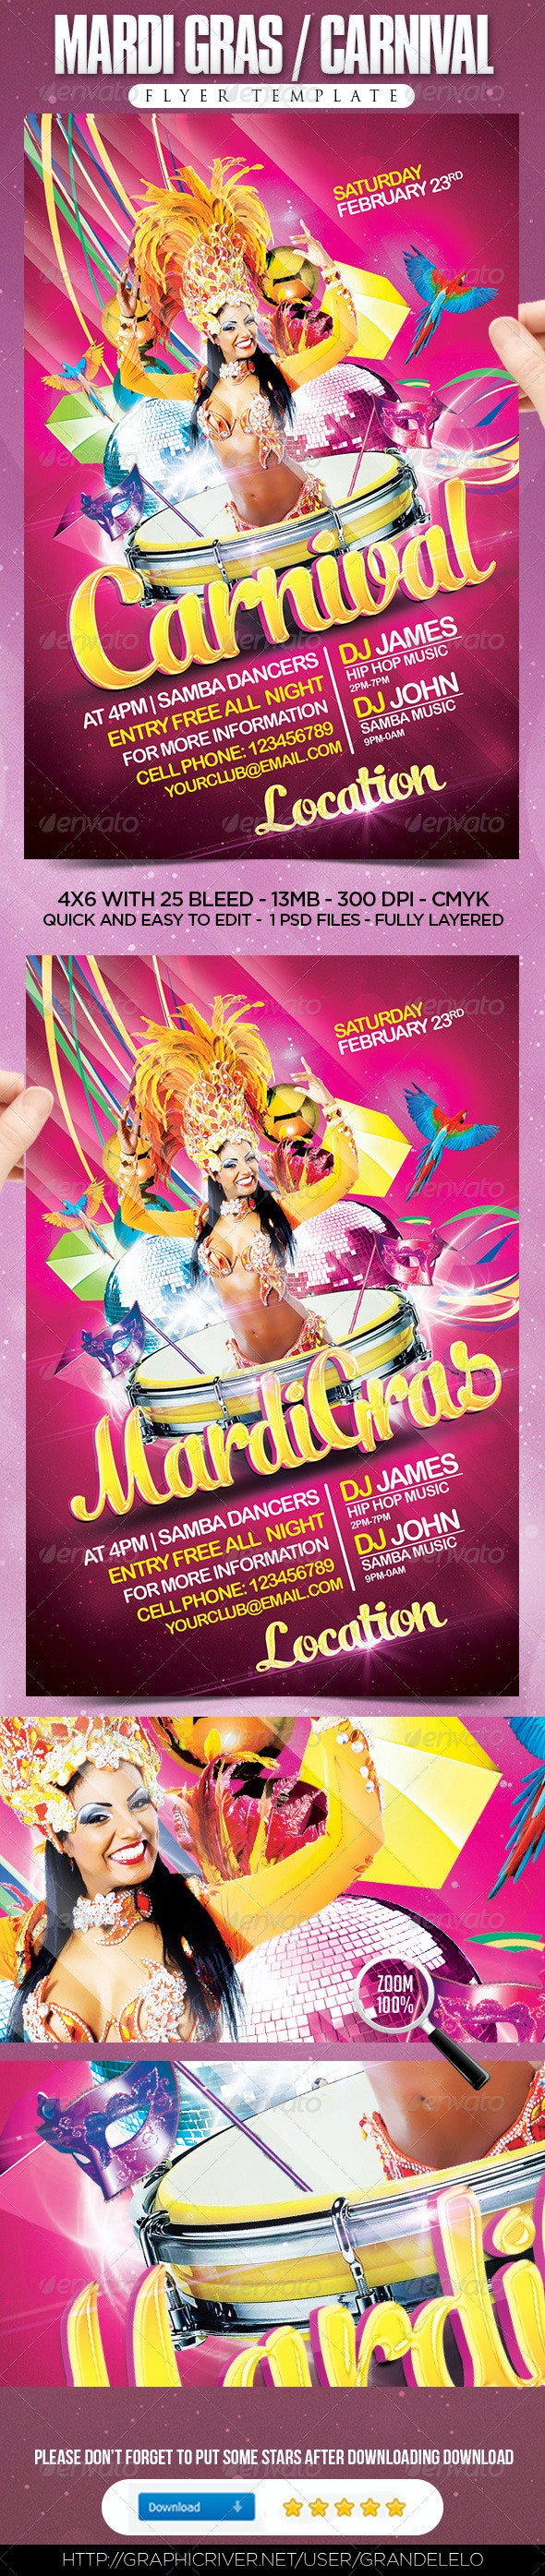 Mardi Gras / Carnival Flyer Template - Clubs & Parties Events